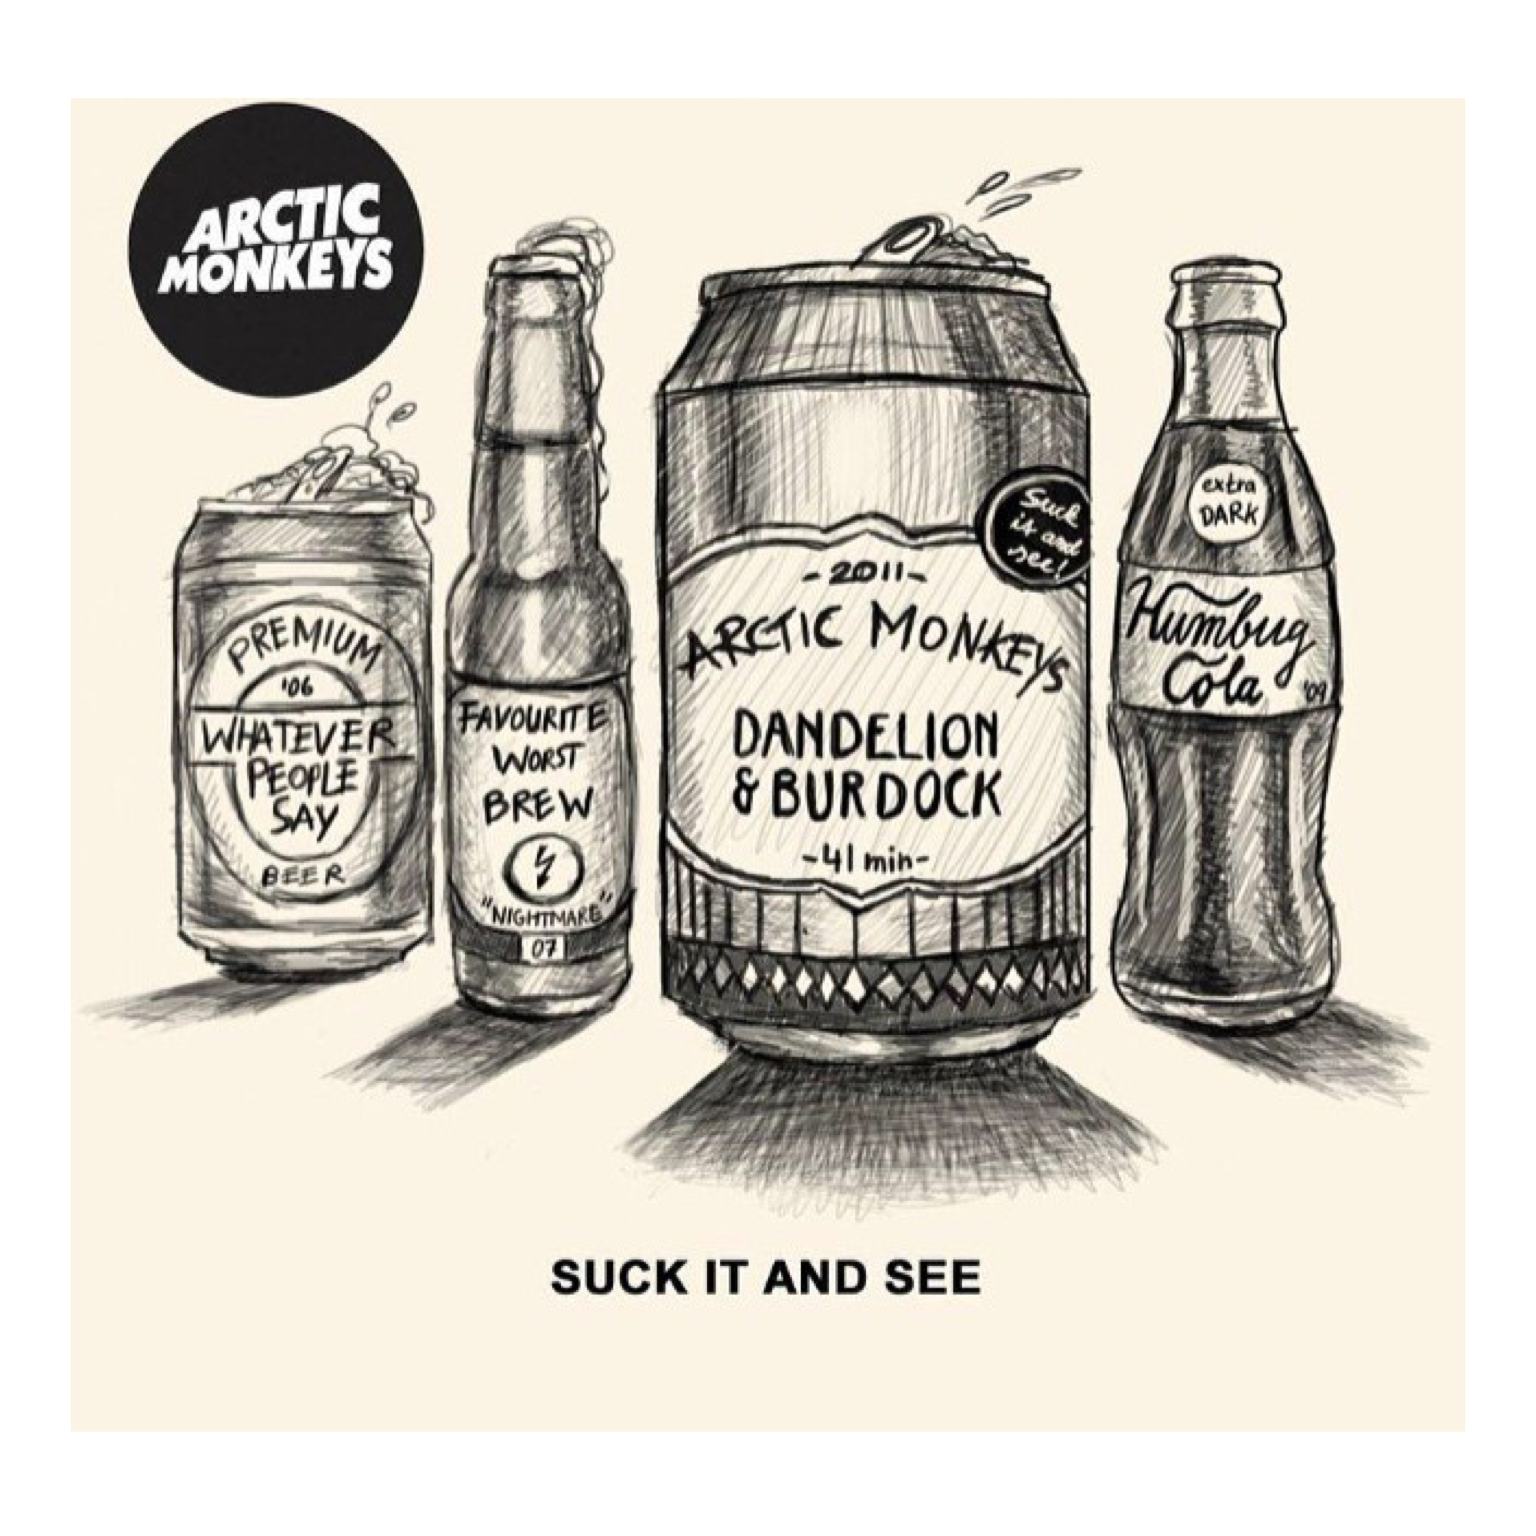 Arctic monkeys ♡ Favourite worst nightmare  Whatever people say I am that's what I'm not Humbug  Suck it and see  Am